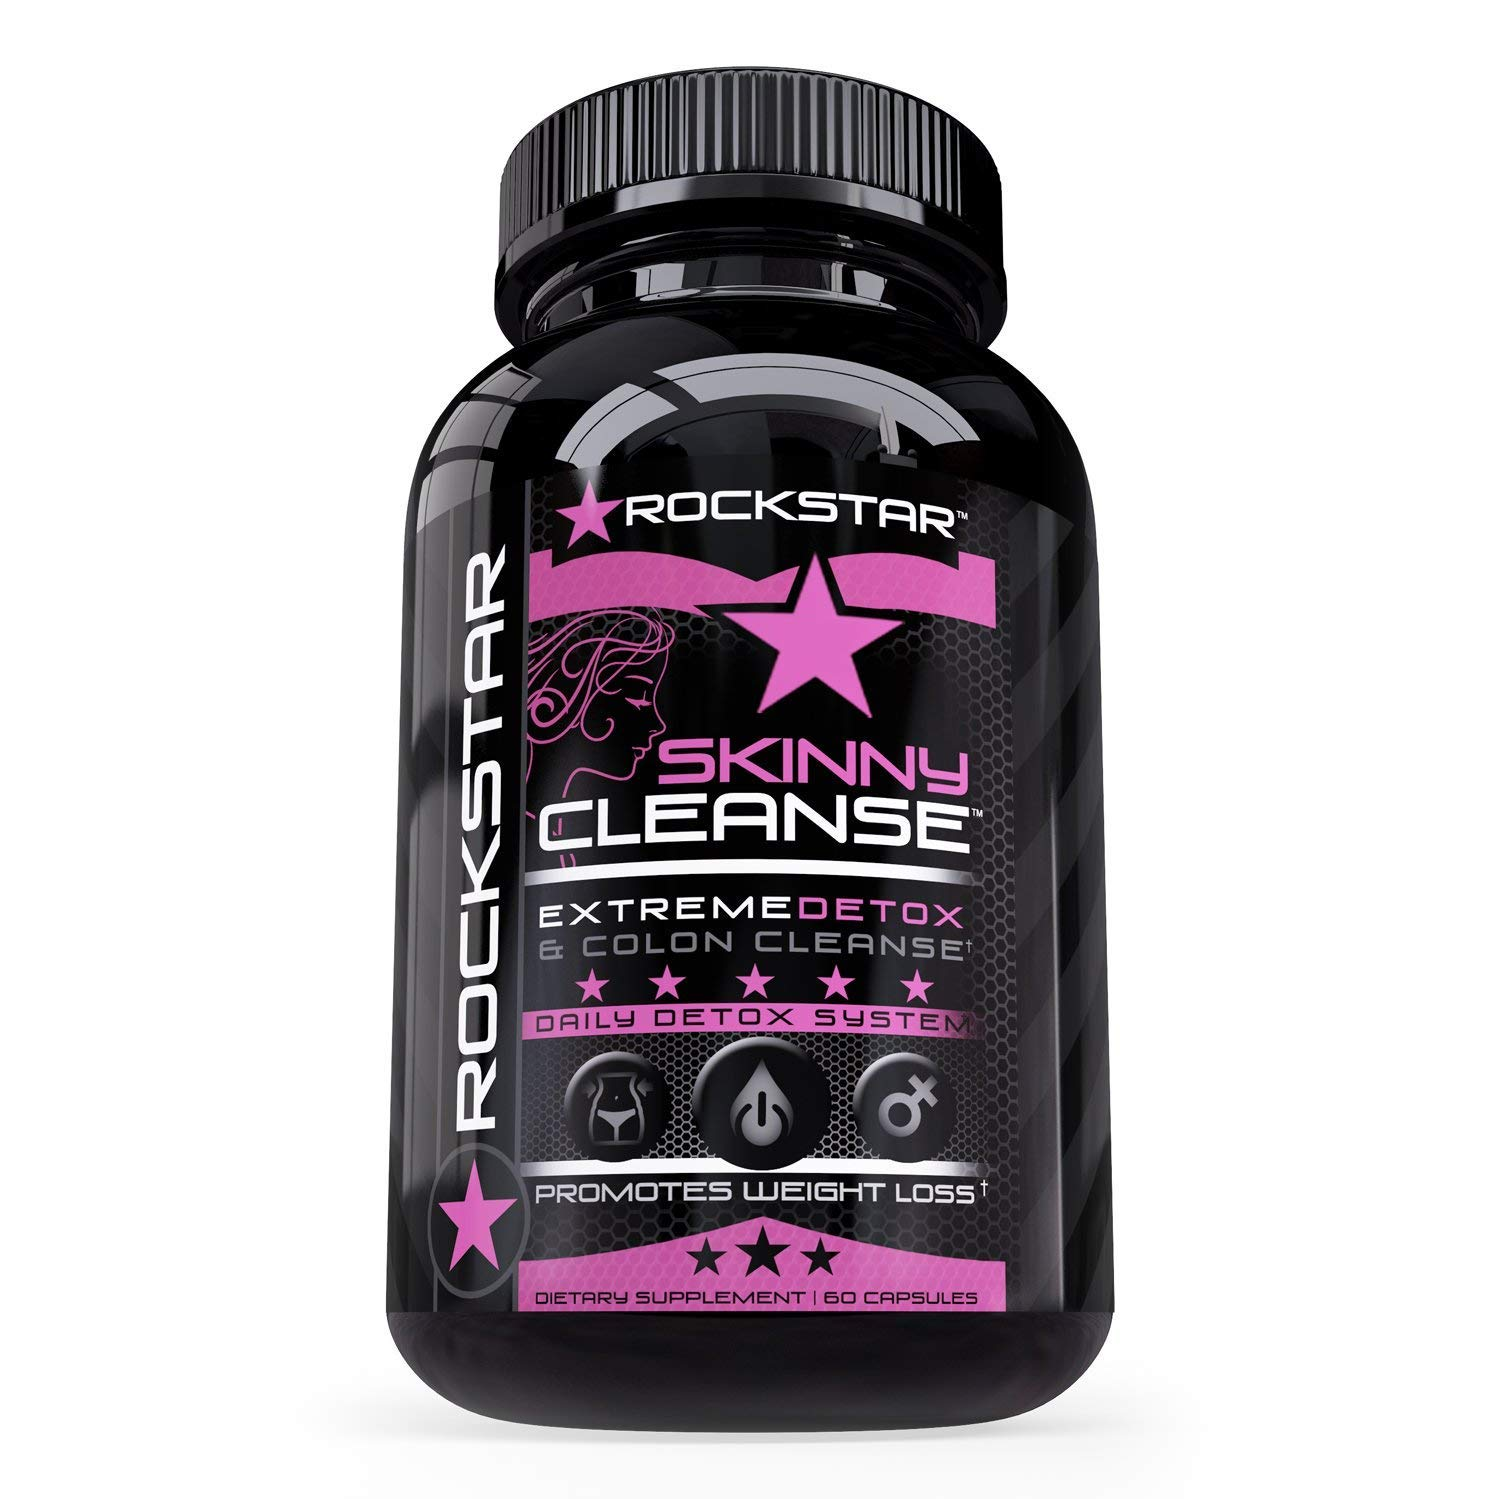 Rockstar Skinny Cleanse Colon Cleanser & Detox, 1 Fast Weight Loss for Women & Men. Detox with Turmeric, Constipation Relief. 100% Pure Colon Detox Pills, Flush Toxins, Boost Energy, 60 Count